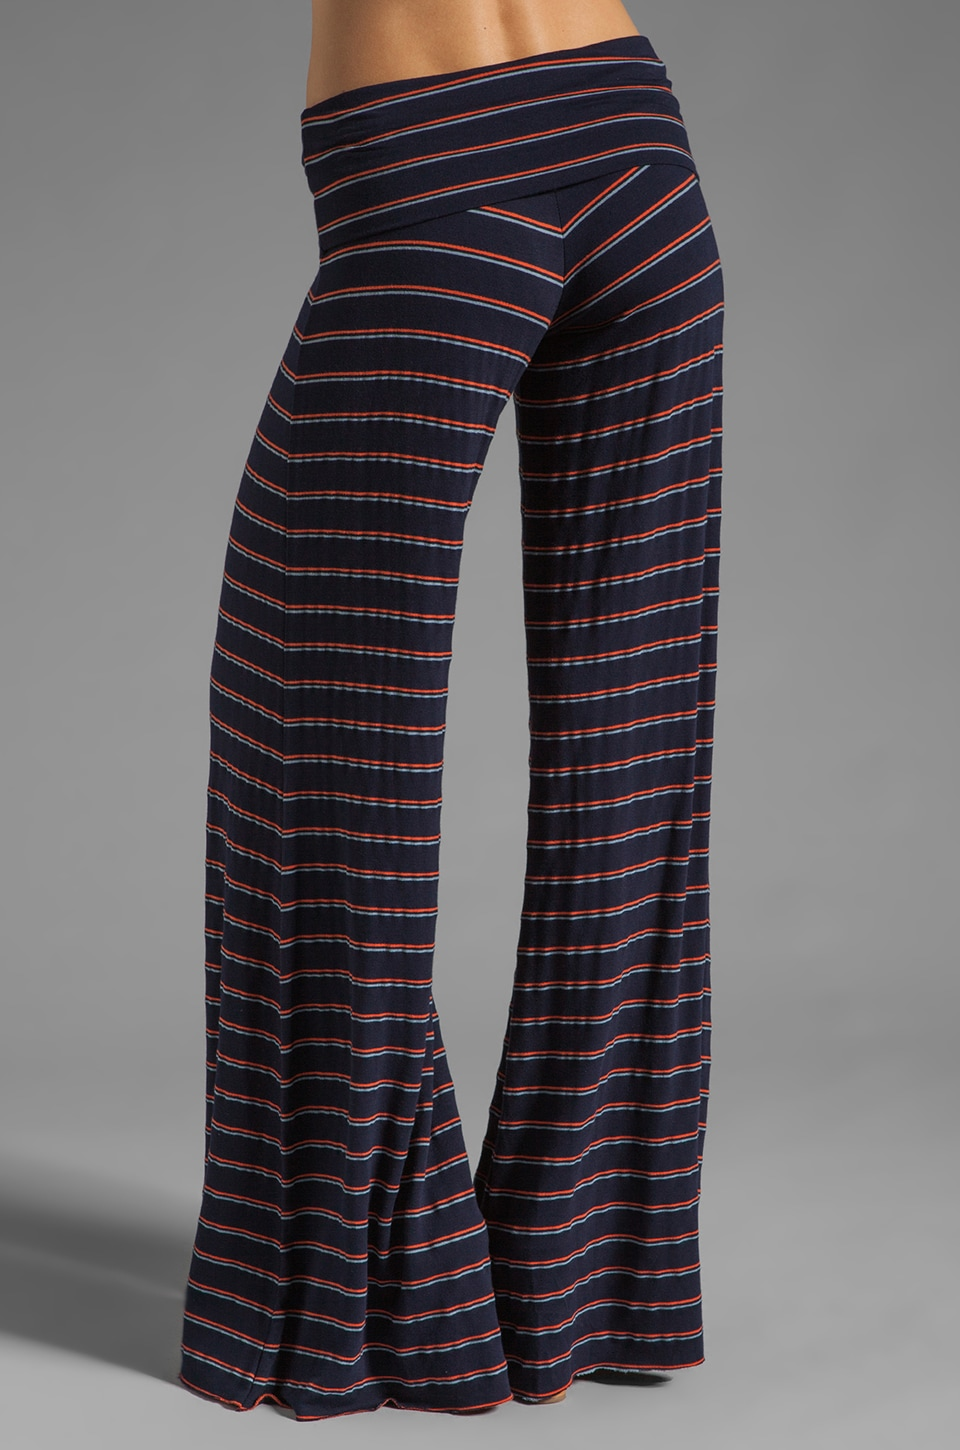 Saint Grace Stripe Carol Pant in Night